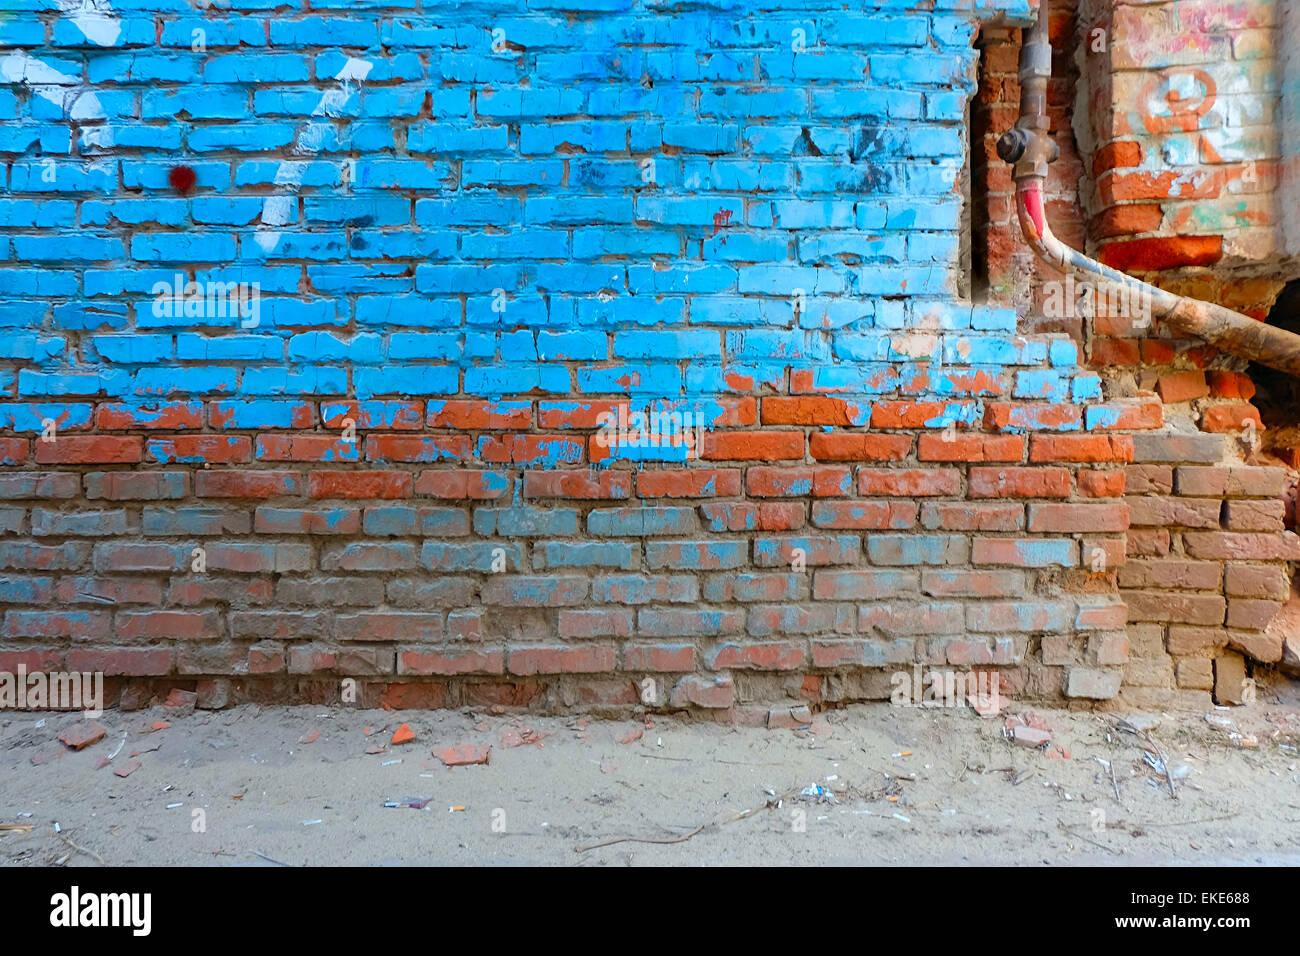 Old Brick Wall Half Painted In Bright Blue Color And Rusty